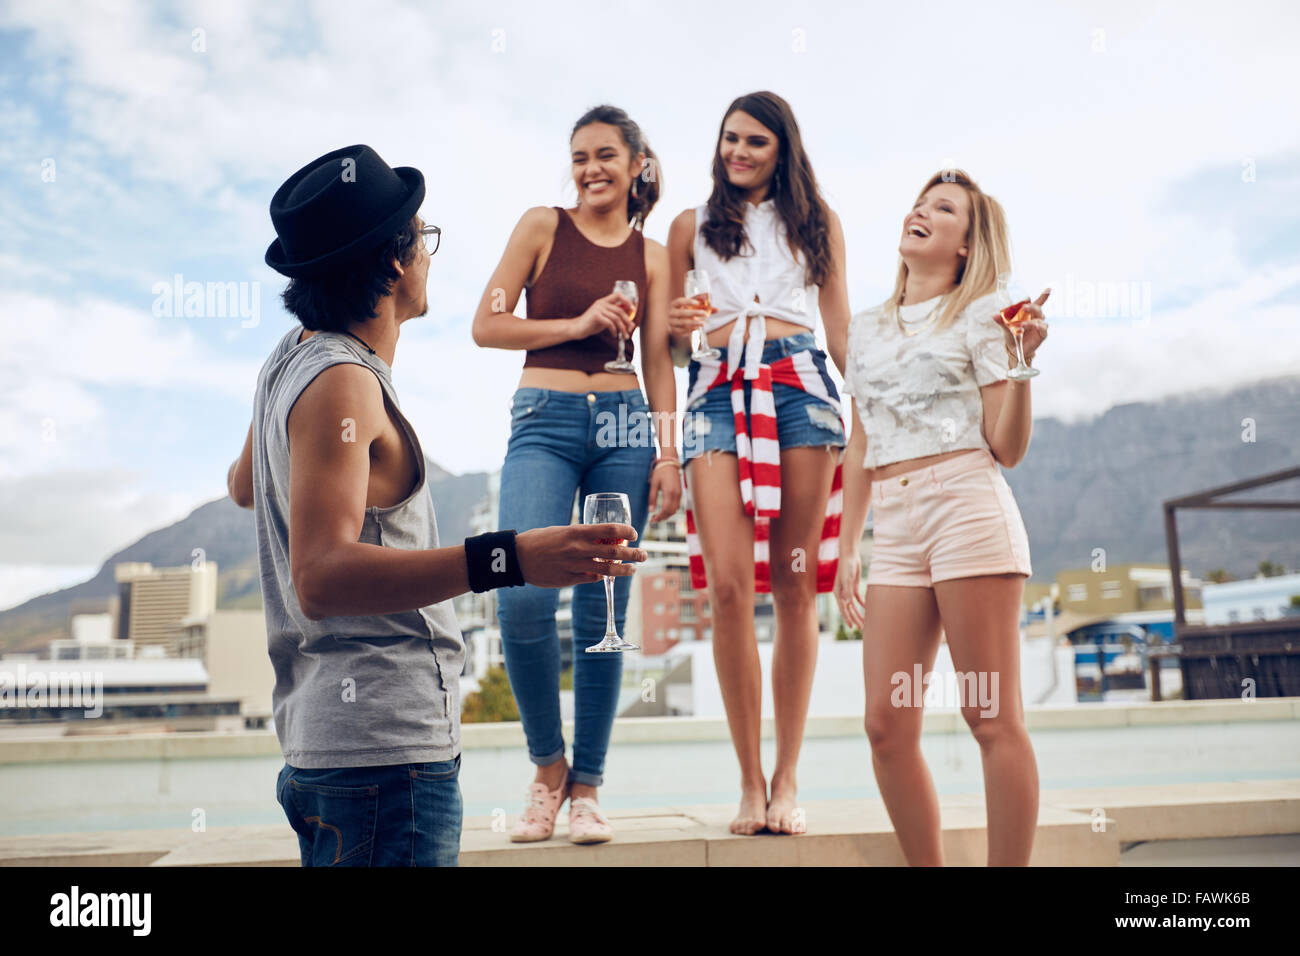 Portrait of happy young friends partying by the swimming pool. Young men and women enjoying a pool party with drinks. - Stock Image